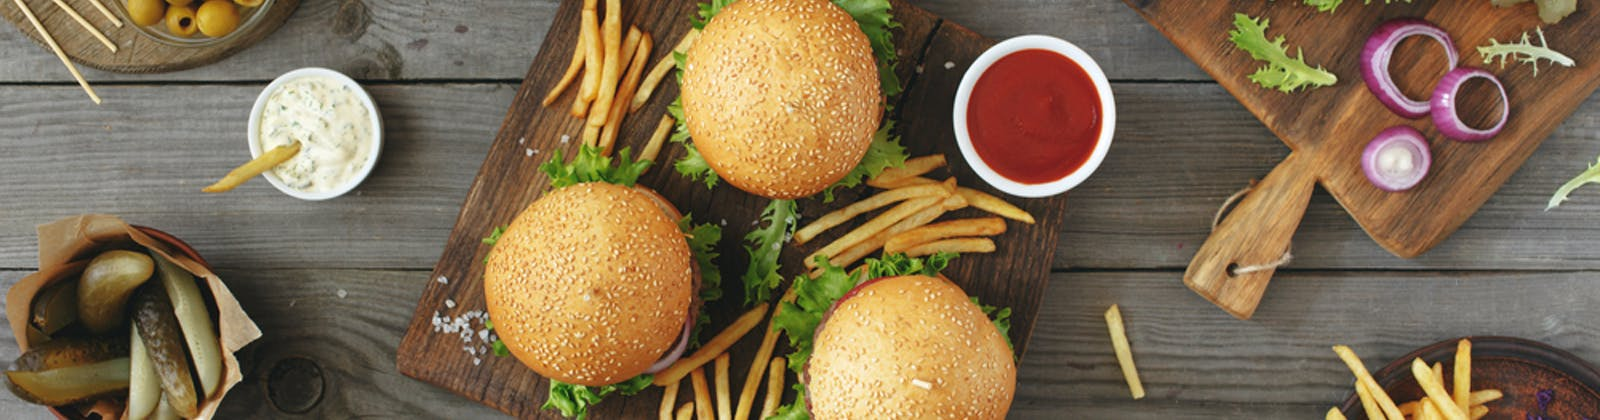 Cheat meals you can have when going to a restaurant